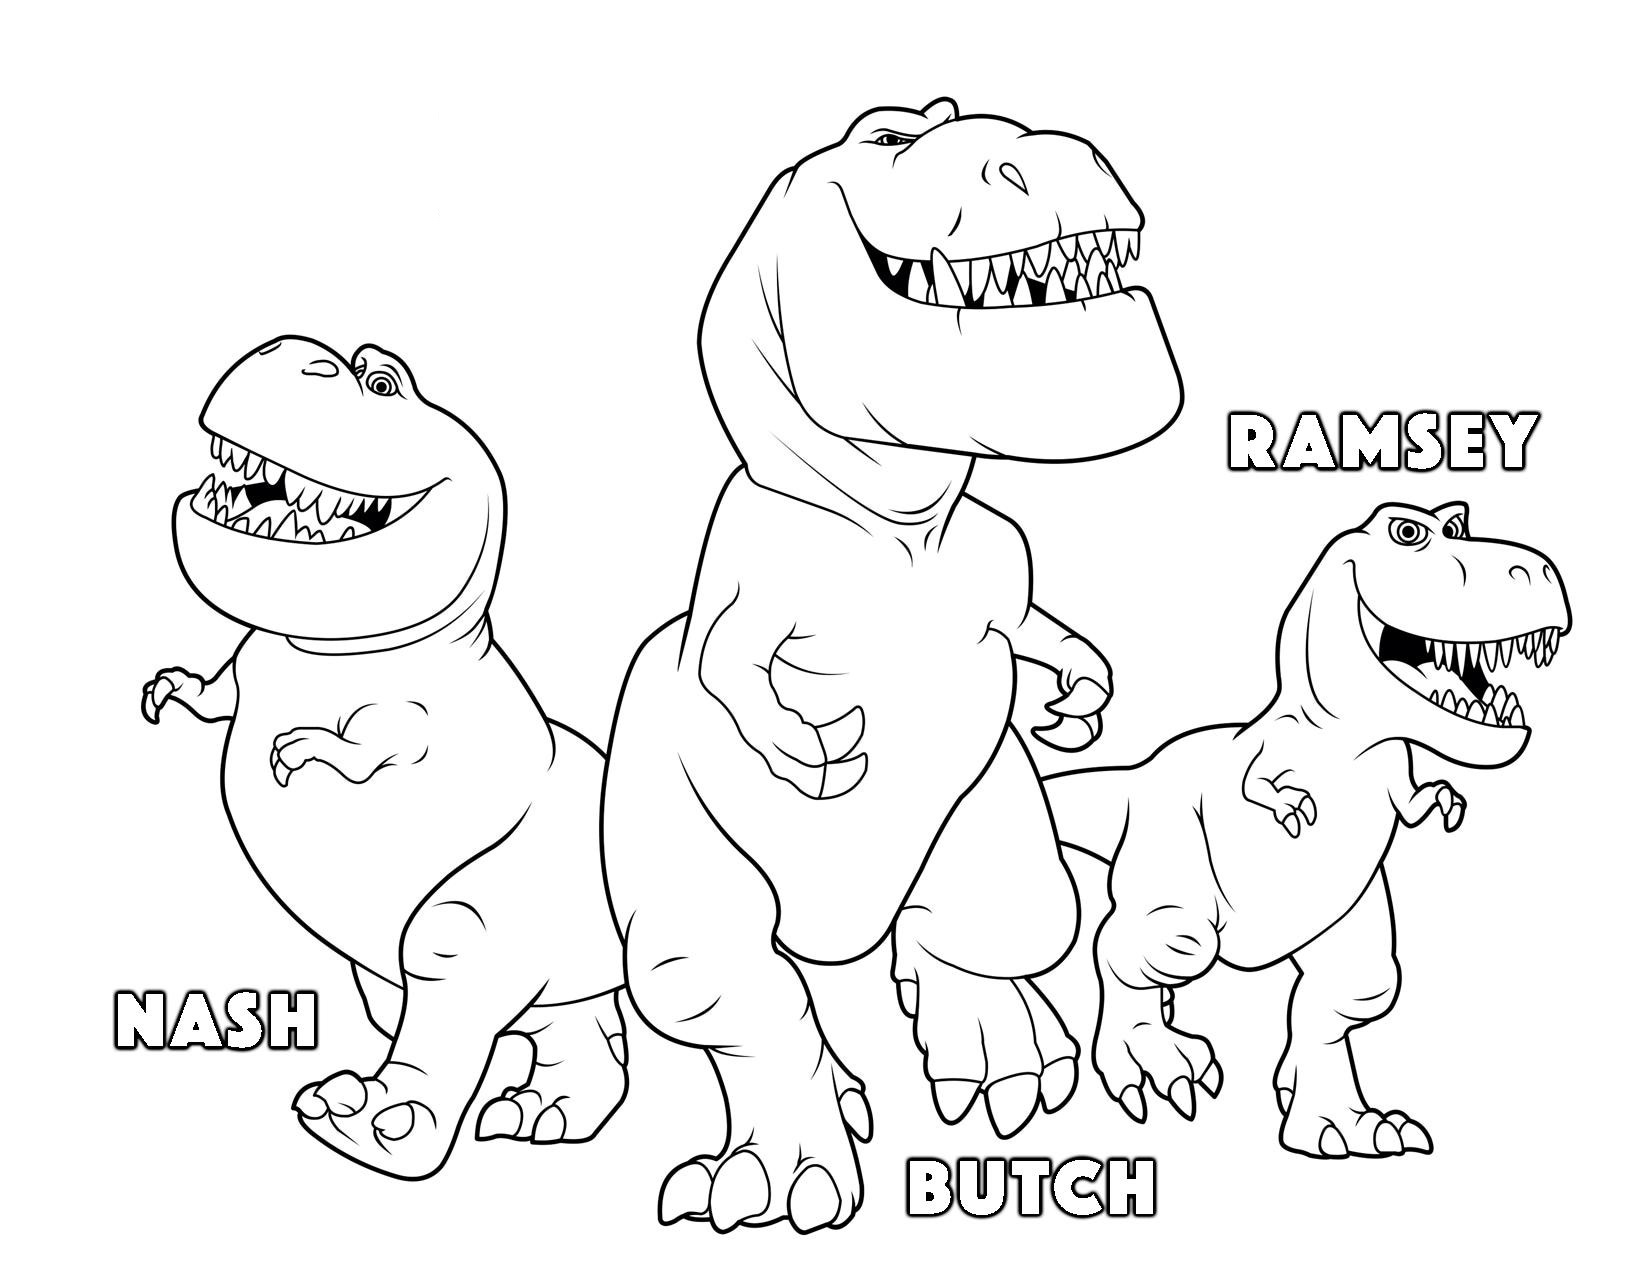 Force Character Design From Life Drawing Pdf Free : The good dinosaur butch ramsey nash coloring pages kids